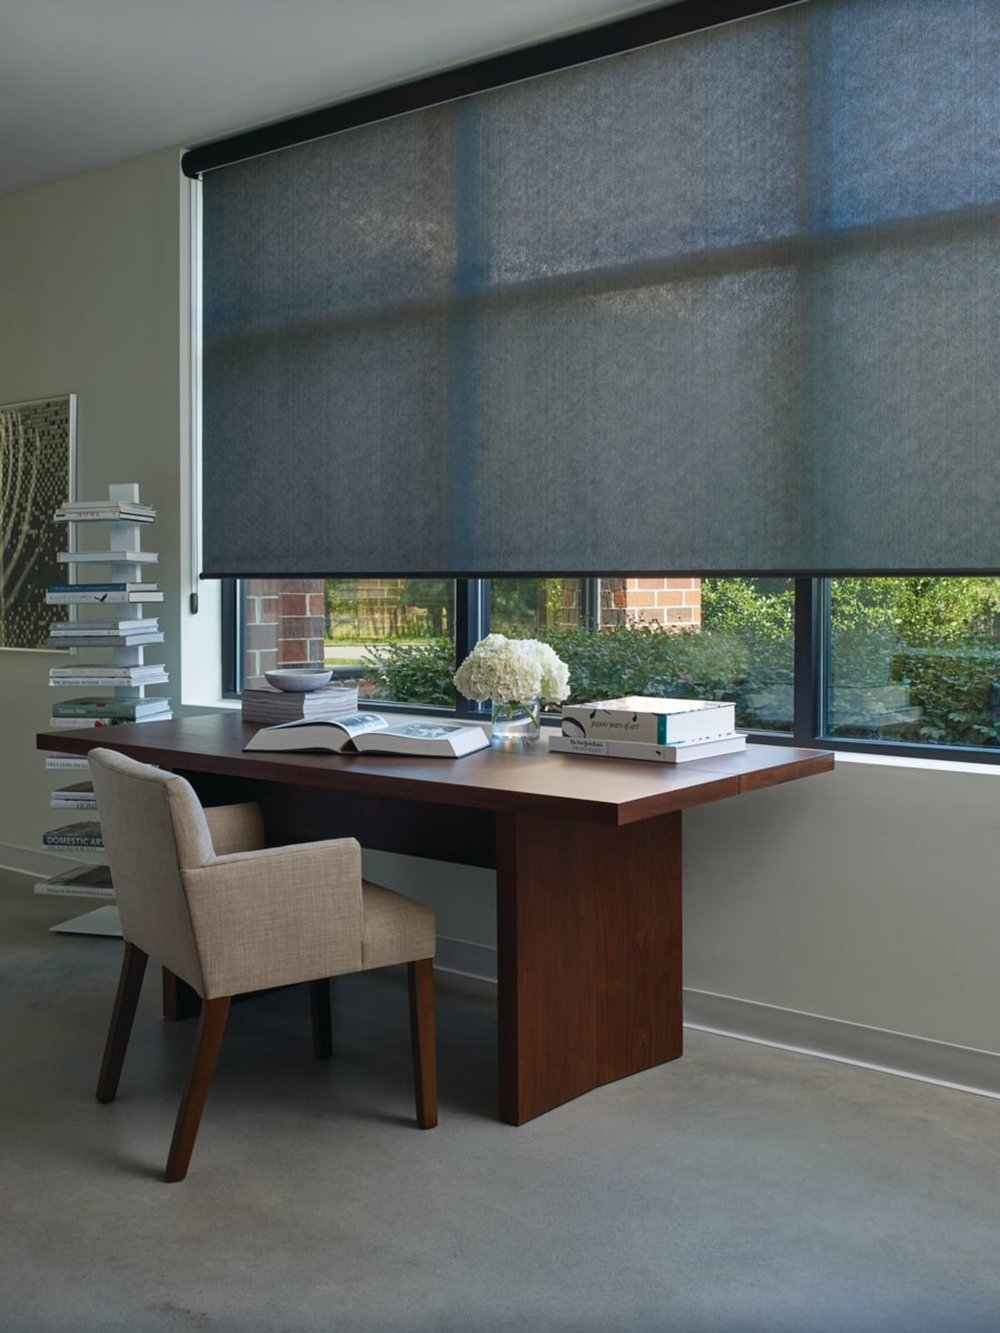 Textured Roman Shades Prescott Valley